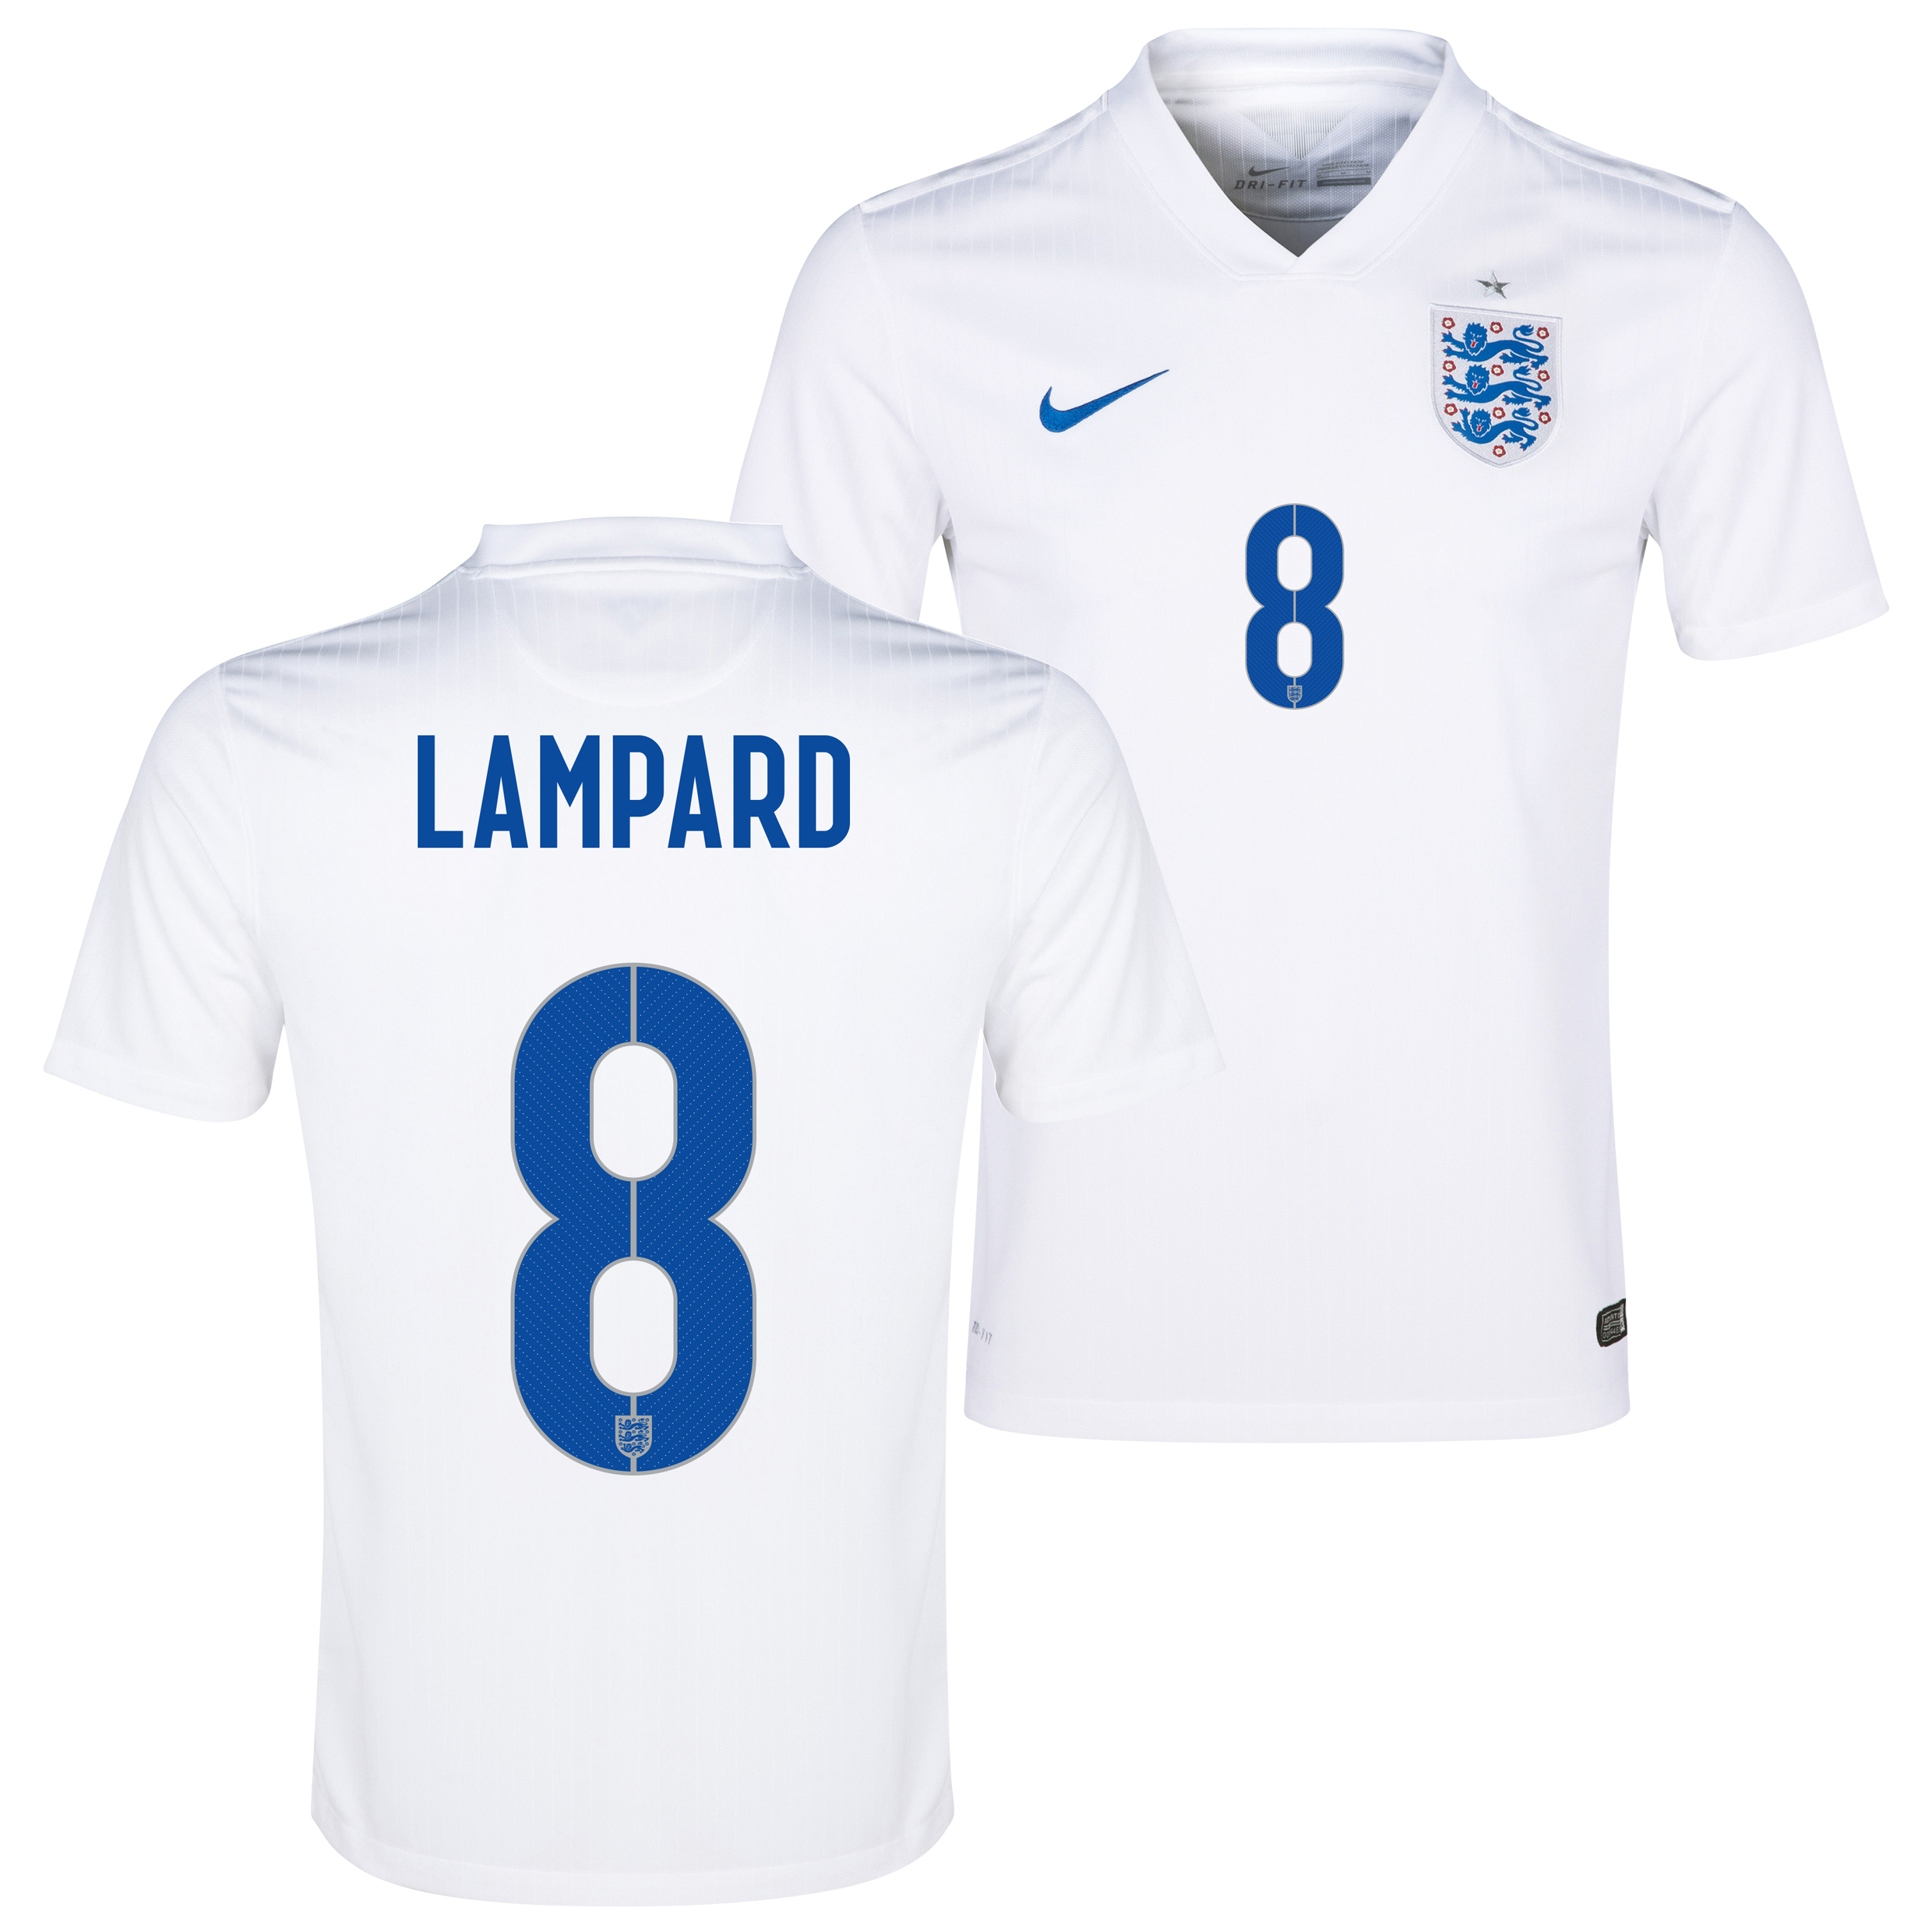 England Match Home Shirt 2014/15 White with Lampard 8 printing